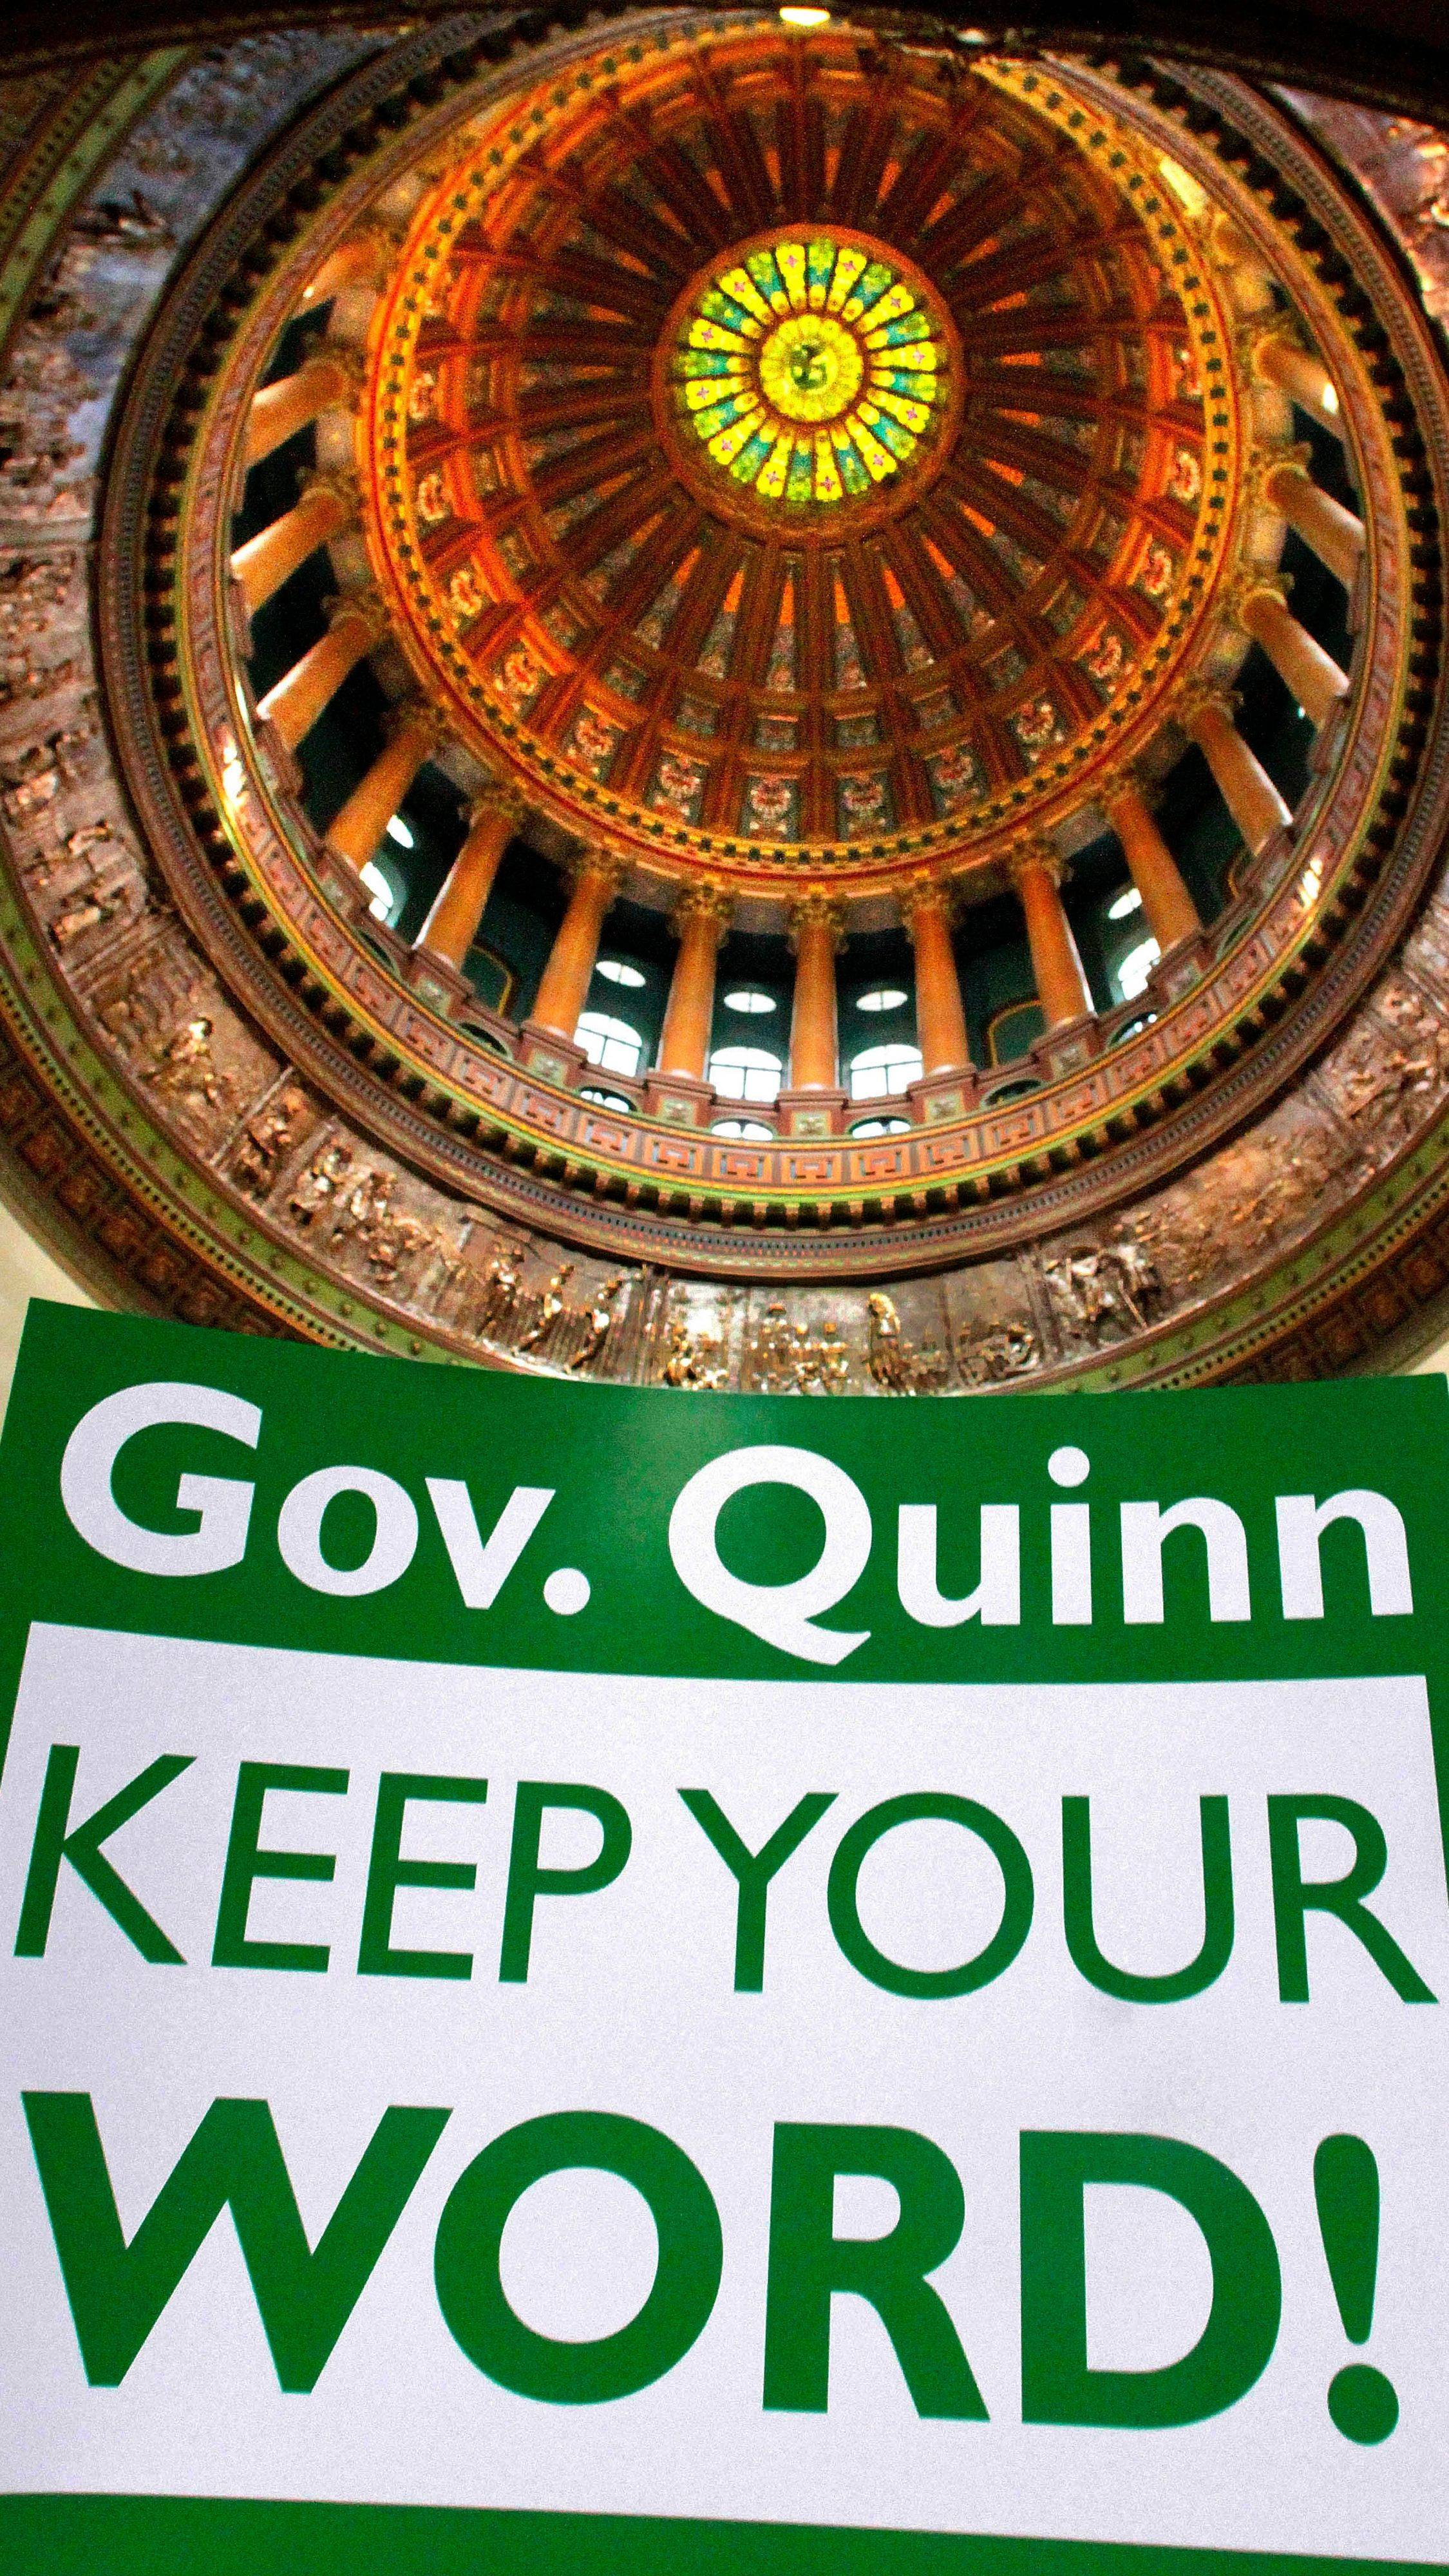 A protester outside the governor's office in Springfield last February sought to pressure Gov. Pat Quinn on the volatile issue of public employee pension funding.